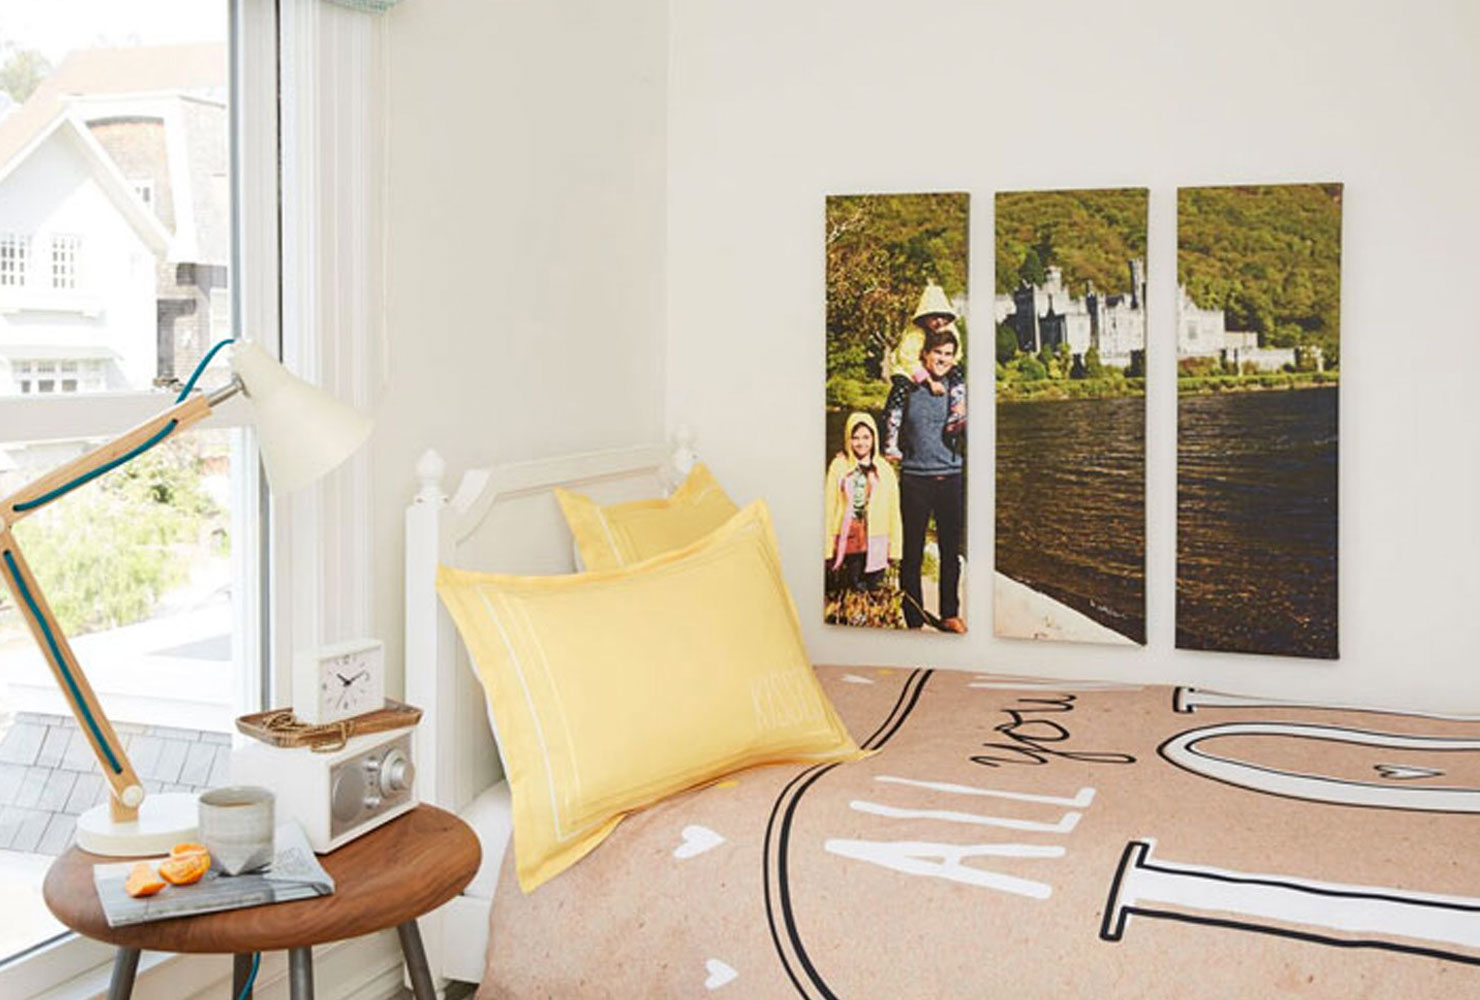 Photo panels in a bedroom.